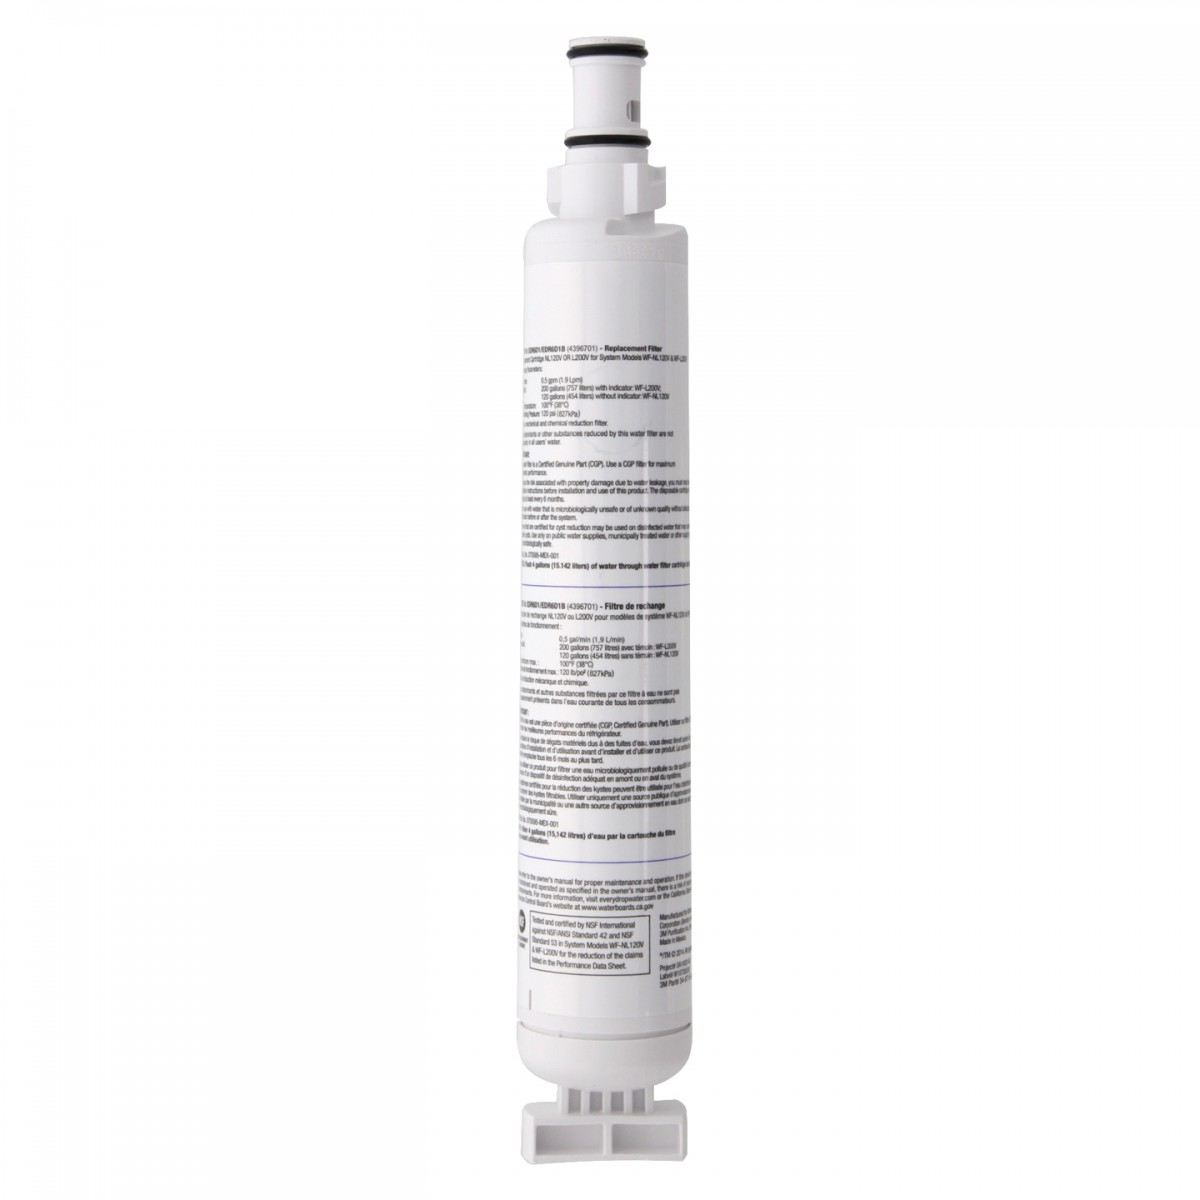 Whirlpool everydrop edr6d1 filter 6 refrigerator water filter - Whirlpool refrigerator ice and water filter pur ...